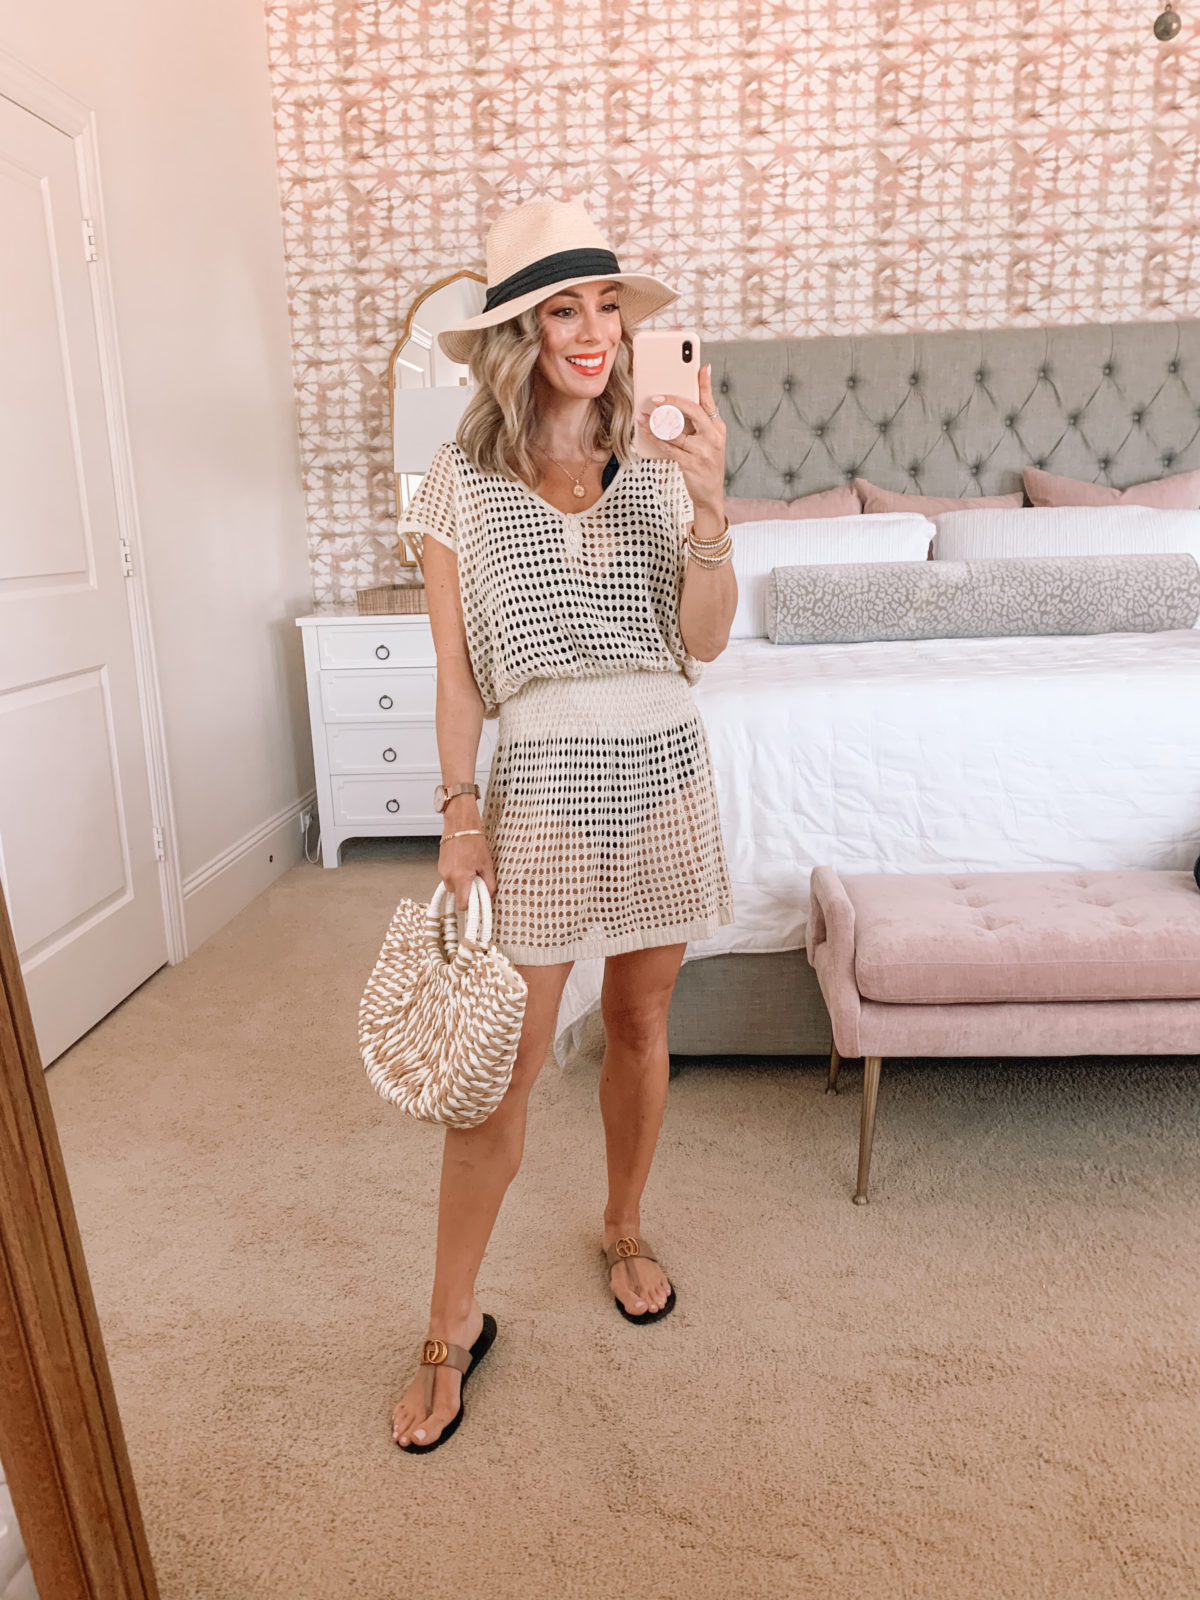 Amazon Fashion Faves, Hat, Cover Up, Sandals, Woven Bag